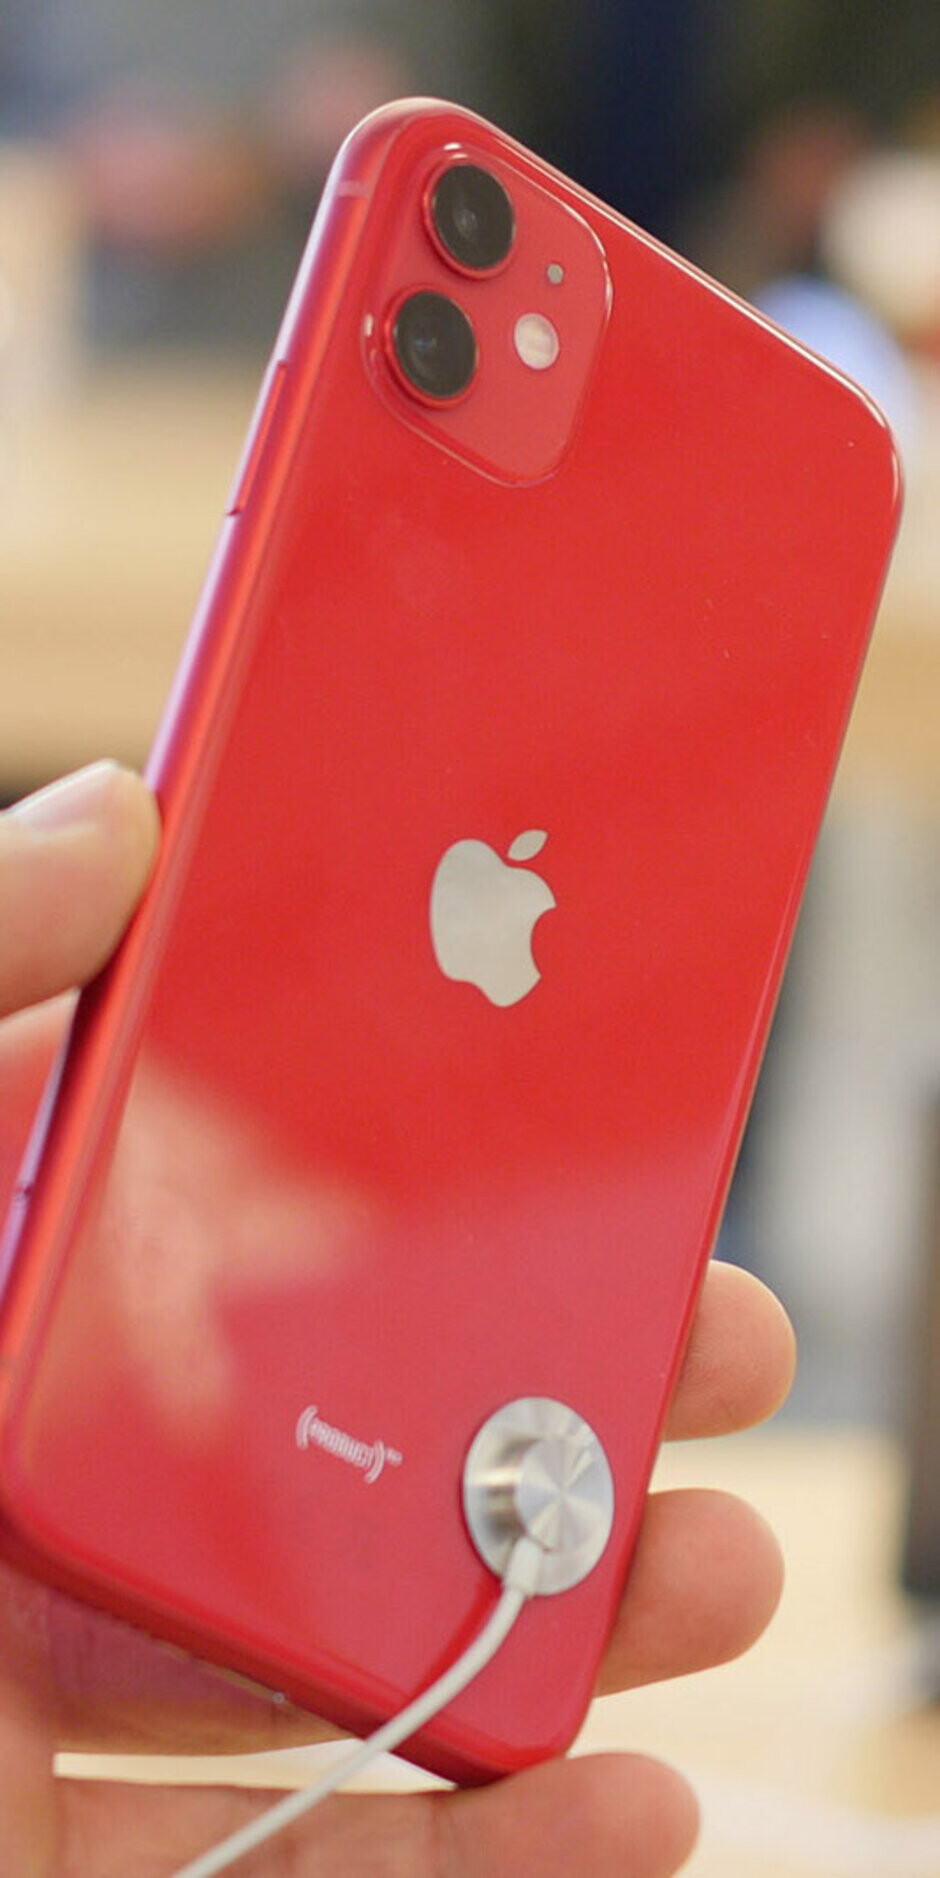 iPhone 11 All New Colors Closer Look green, purple, red